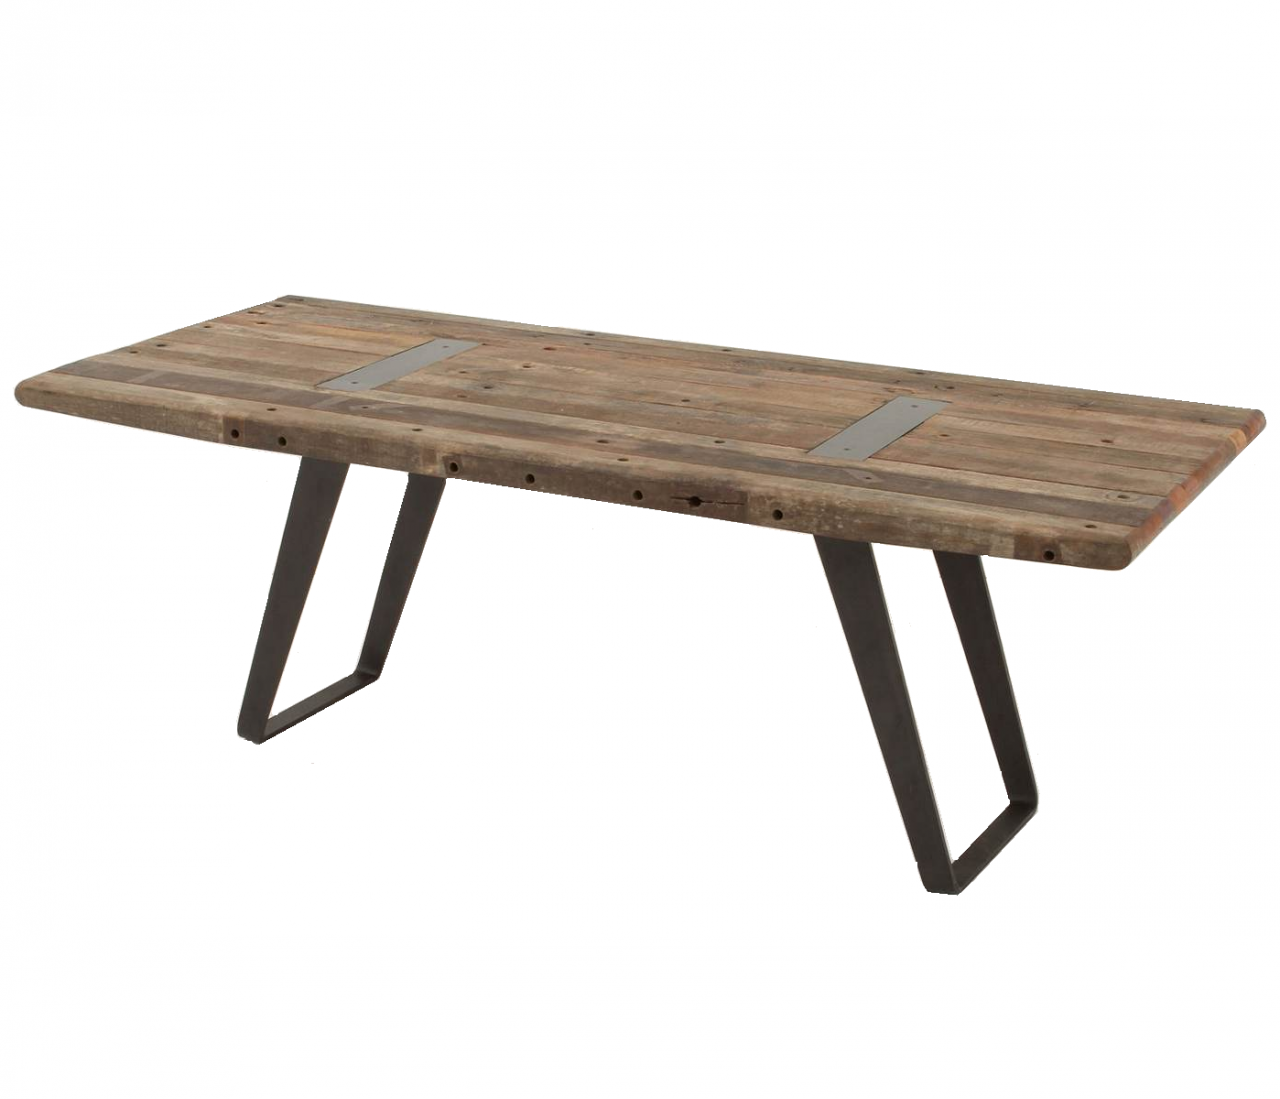 Superb img of Industrial Reclaimed Wood Dining Table 85″ Zin Home Blog with #7D654E color and 1280x1099 pixels